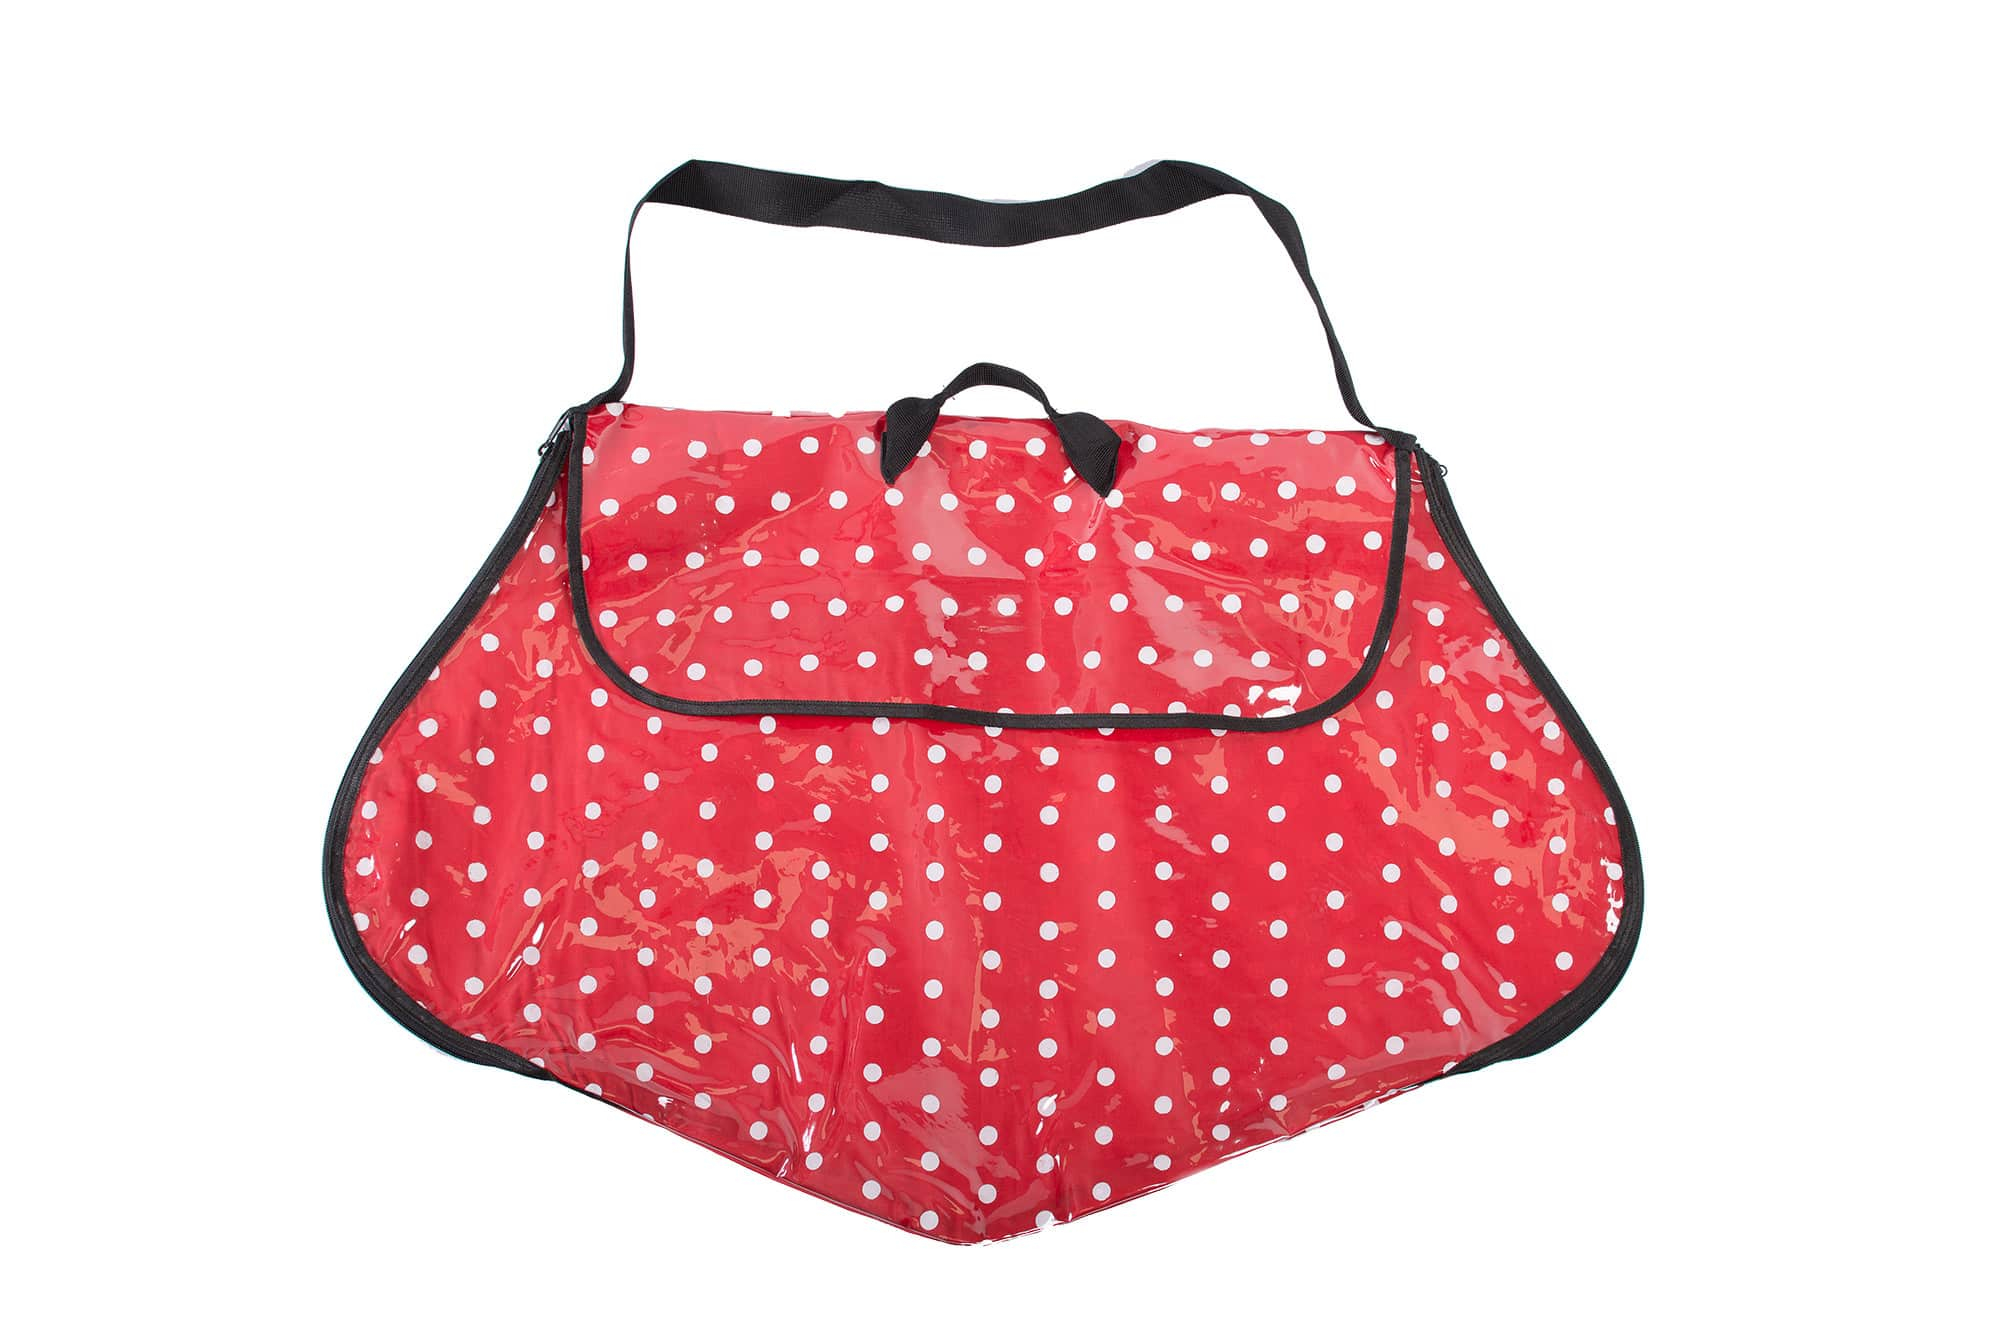 Polka Dot Dress Bag Red